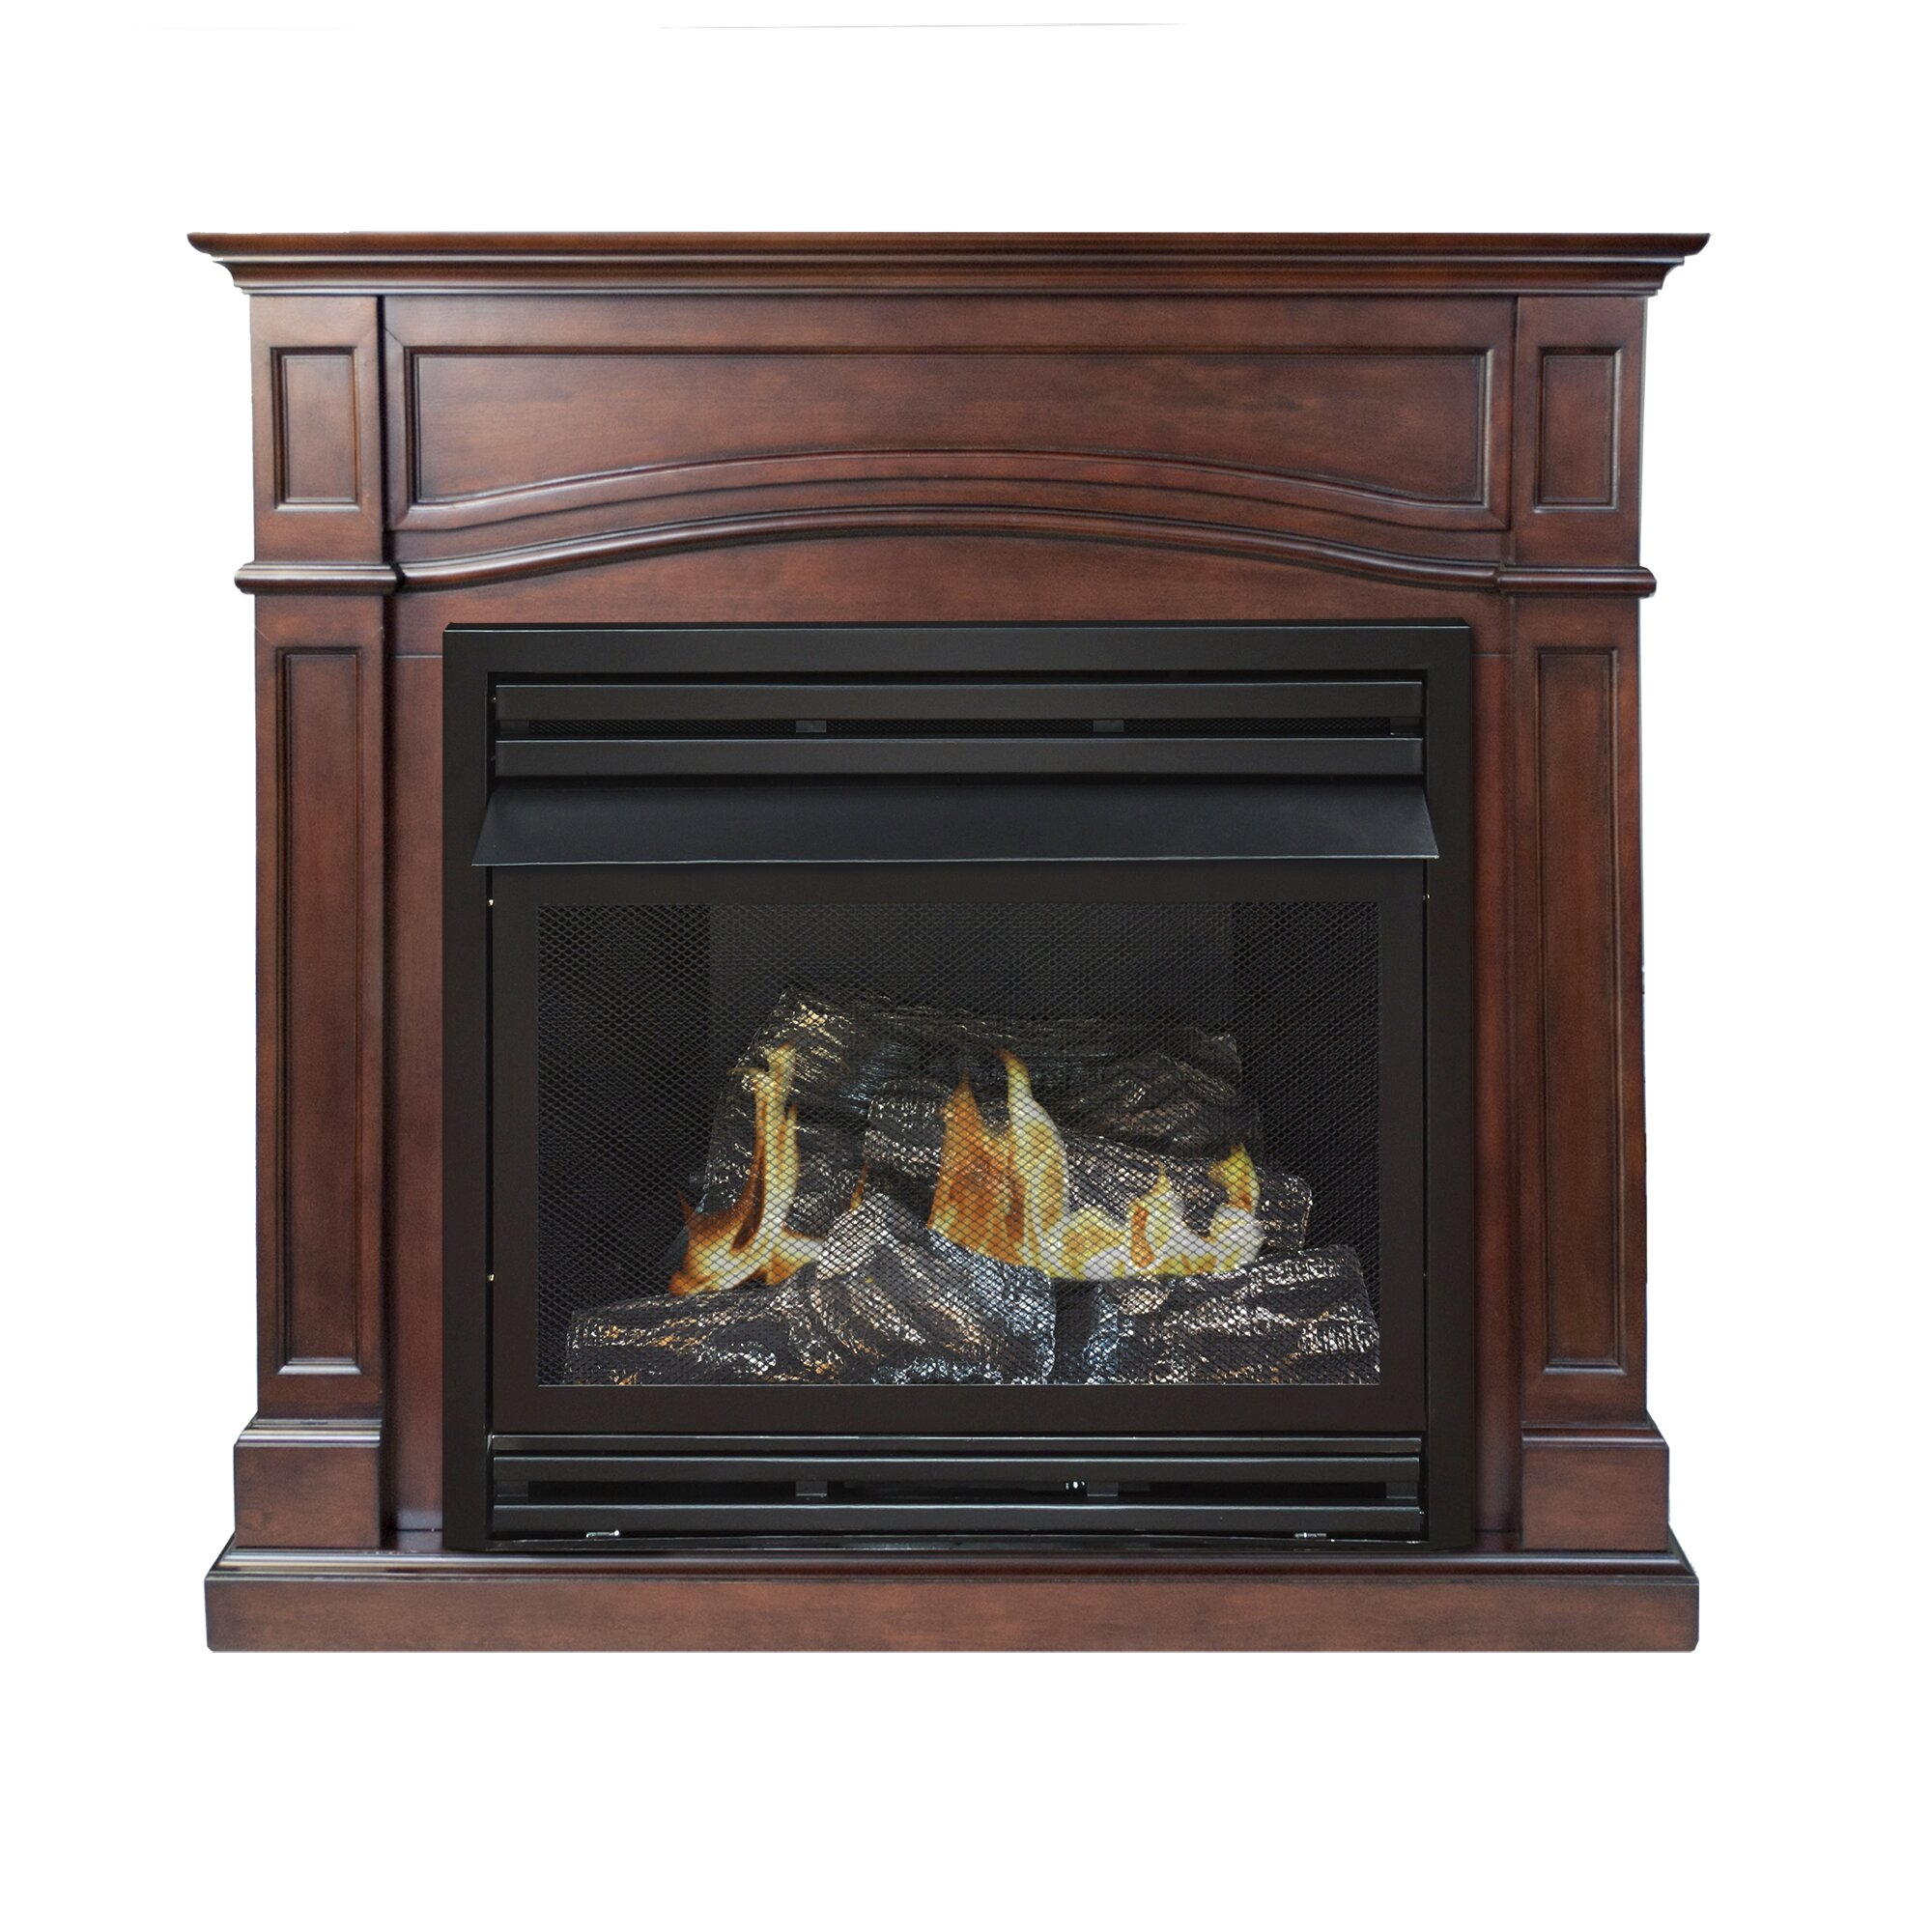 Pleasant Hearth: Pleasant Hearth Dual Fuel Vent Free Gas Fireplace